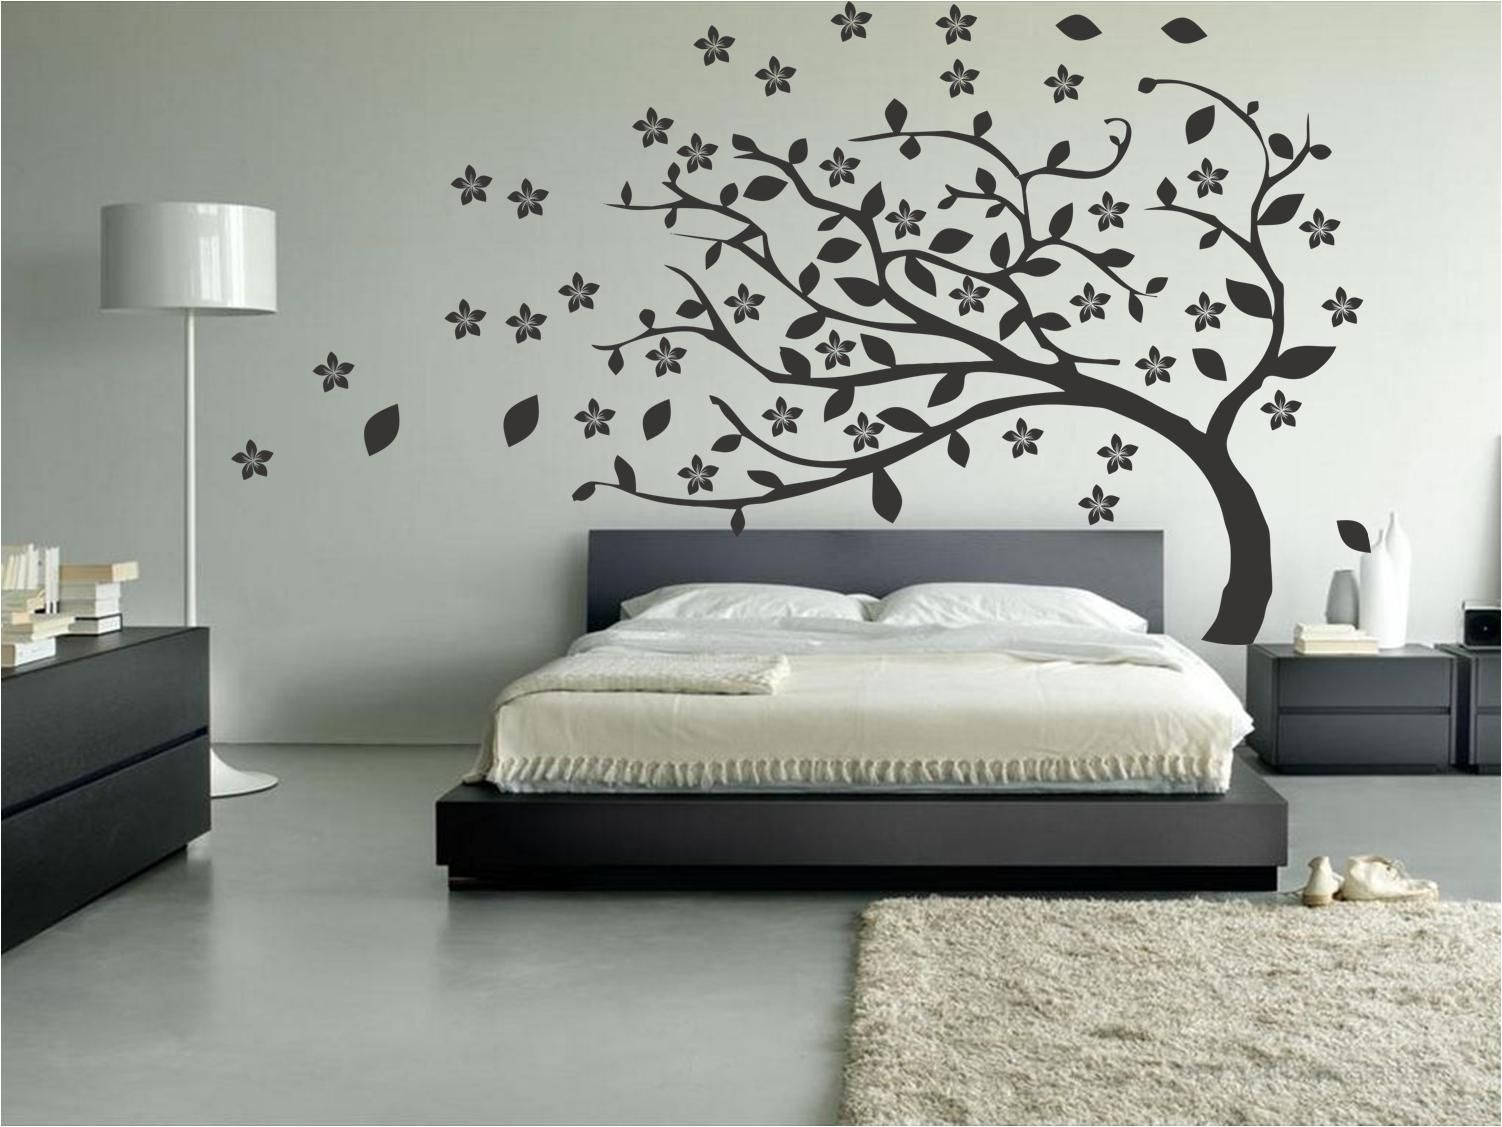 Cmo decorar la pared con vinilos proyectos que intentar decorate your home in a simple economical and fun decorative self adhesive amipublicfo Gallery